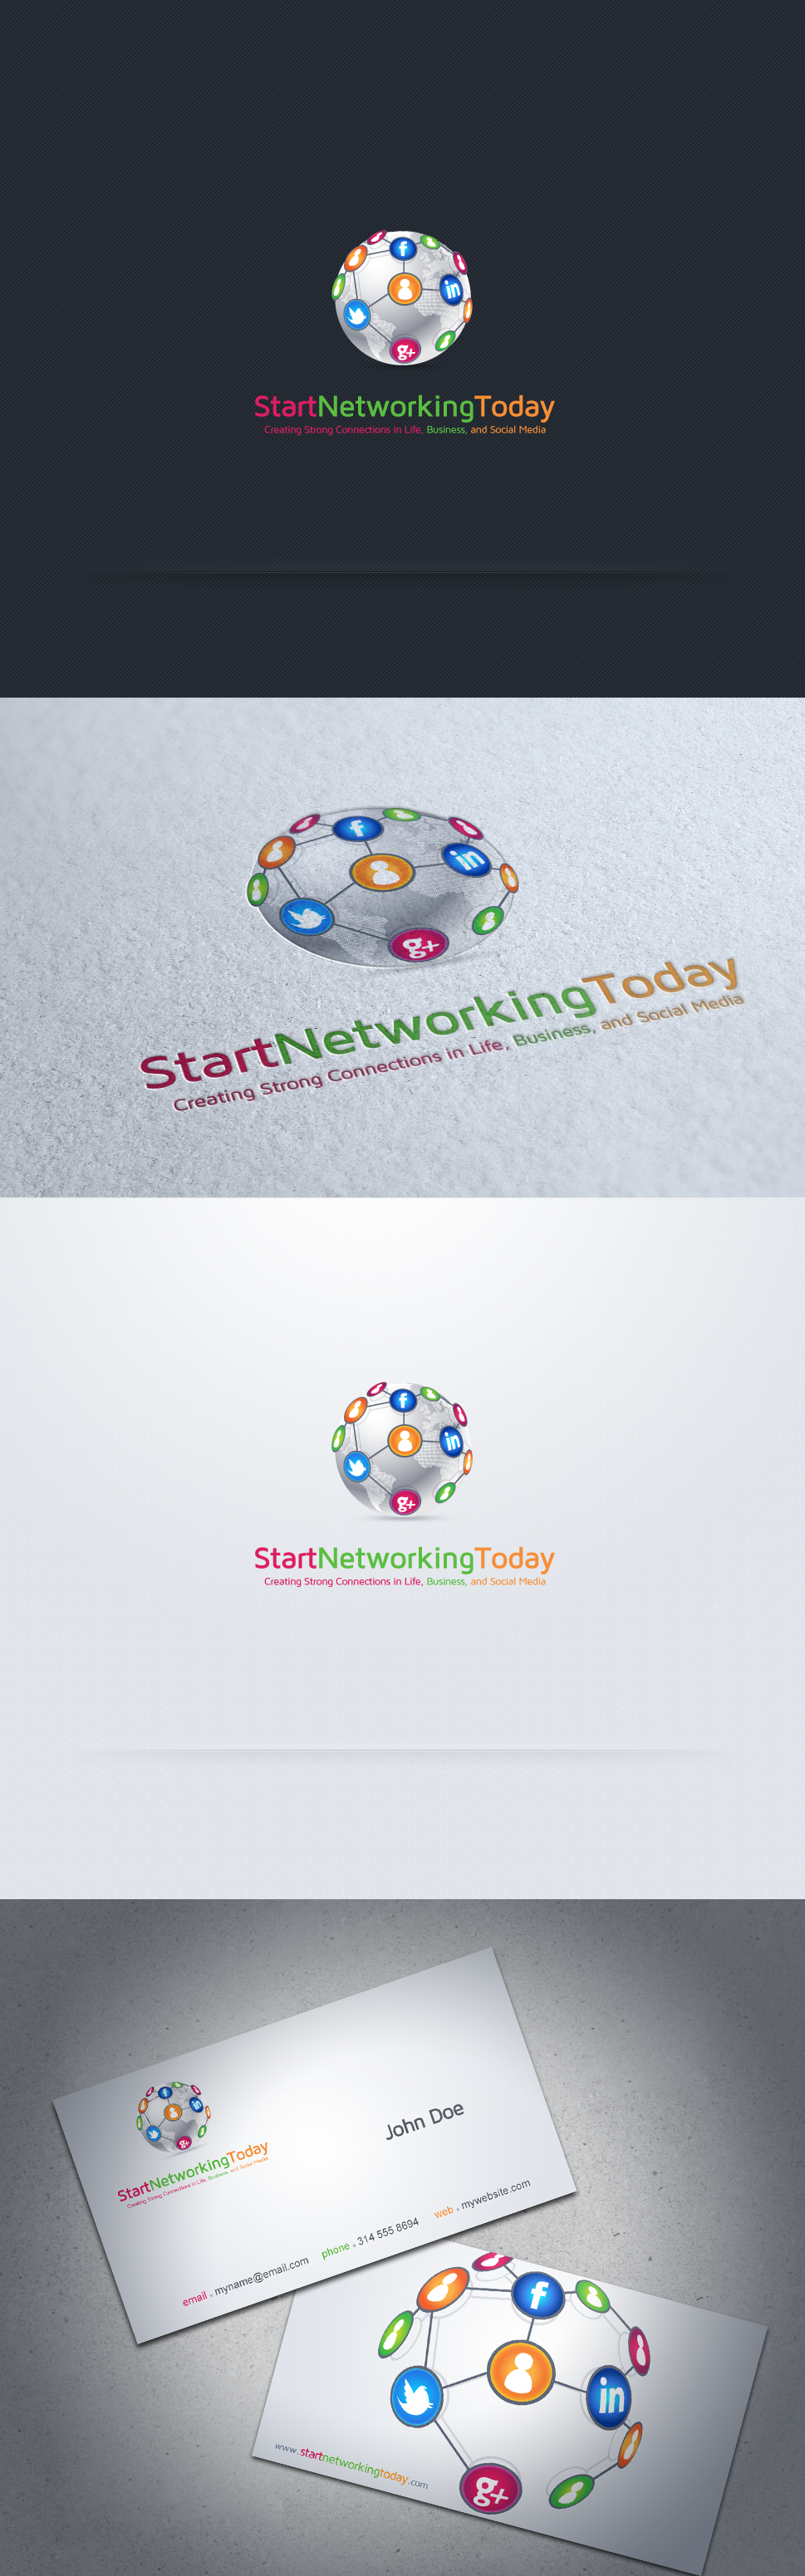 My Networking Website Needs and Awesome Logo!